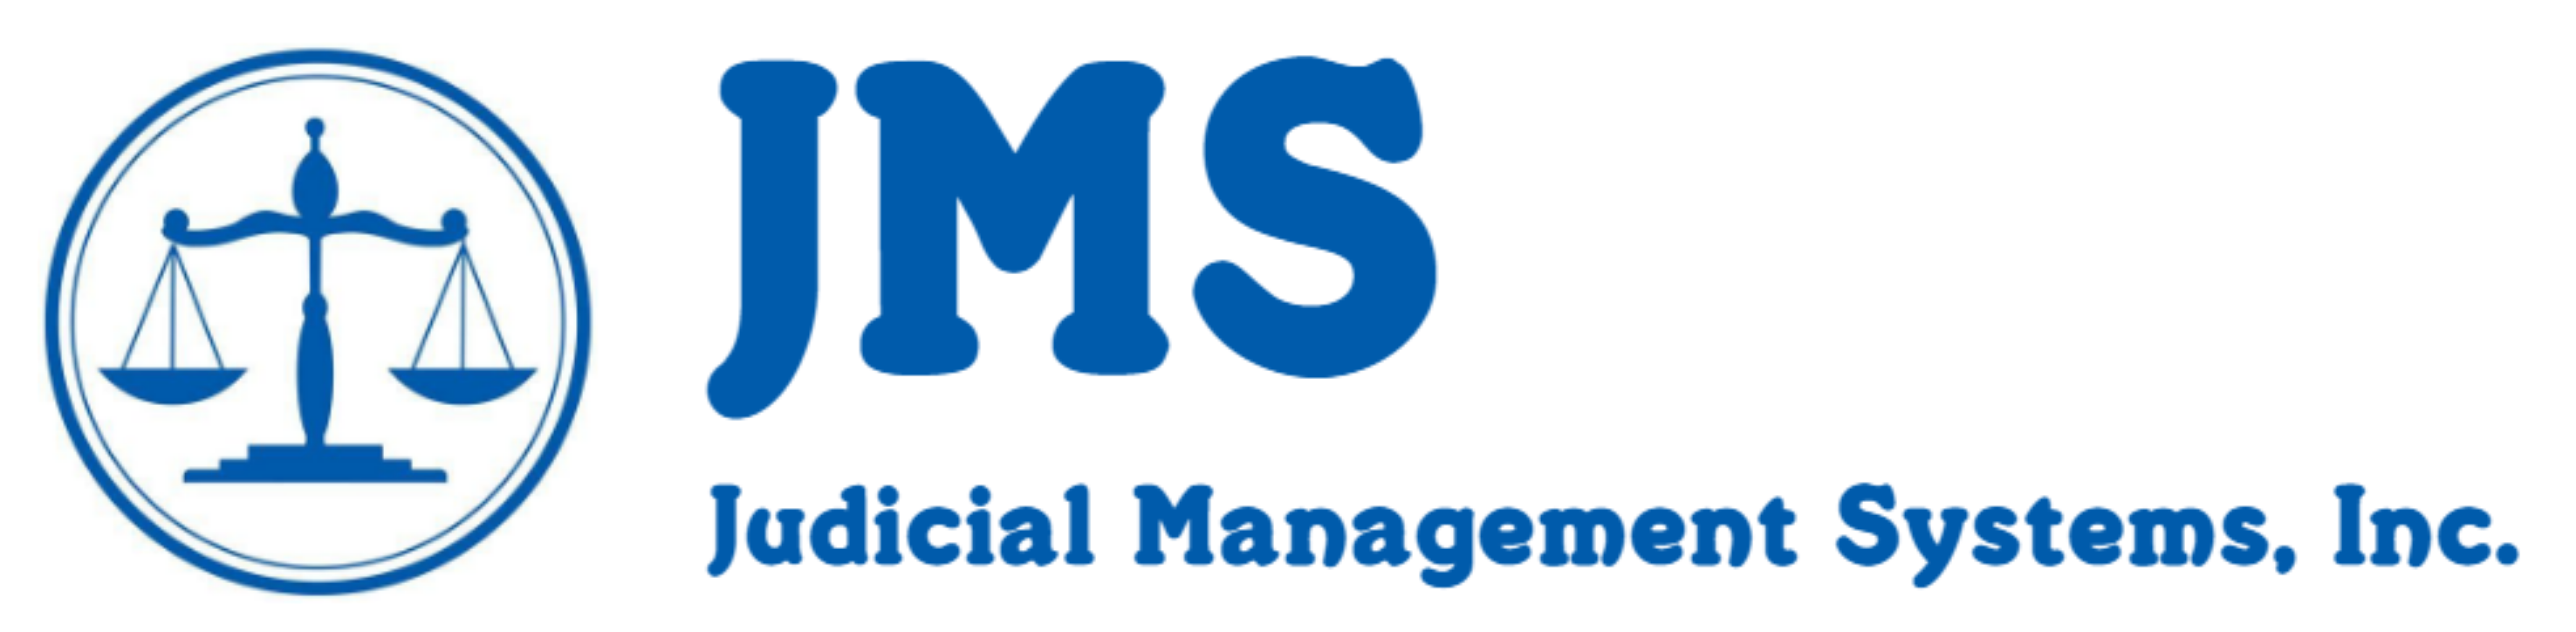 Judicial Management Systems